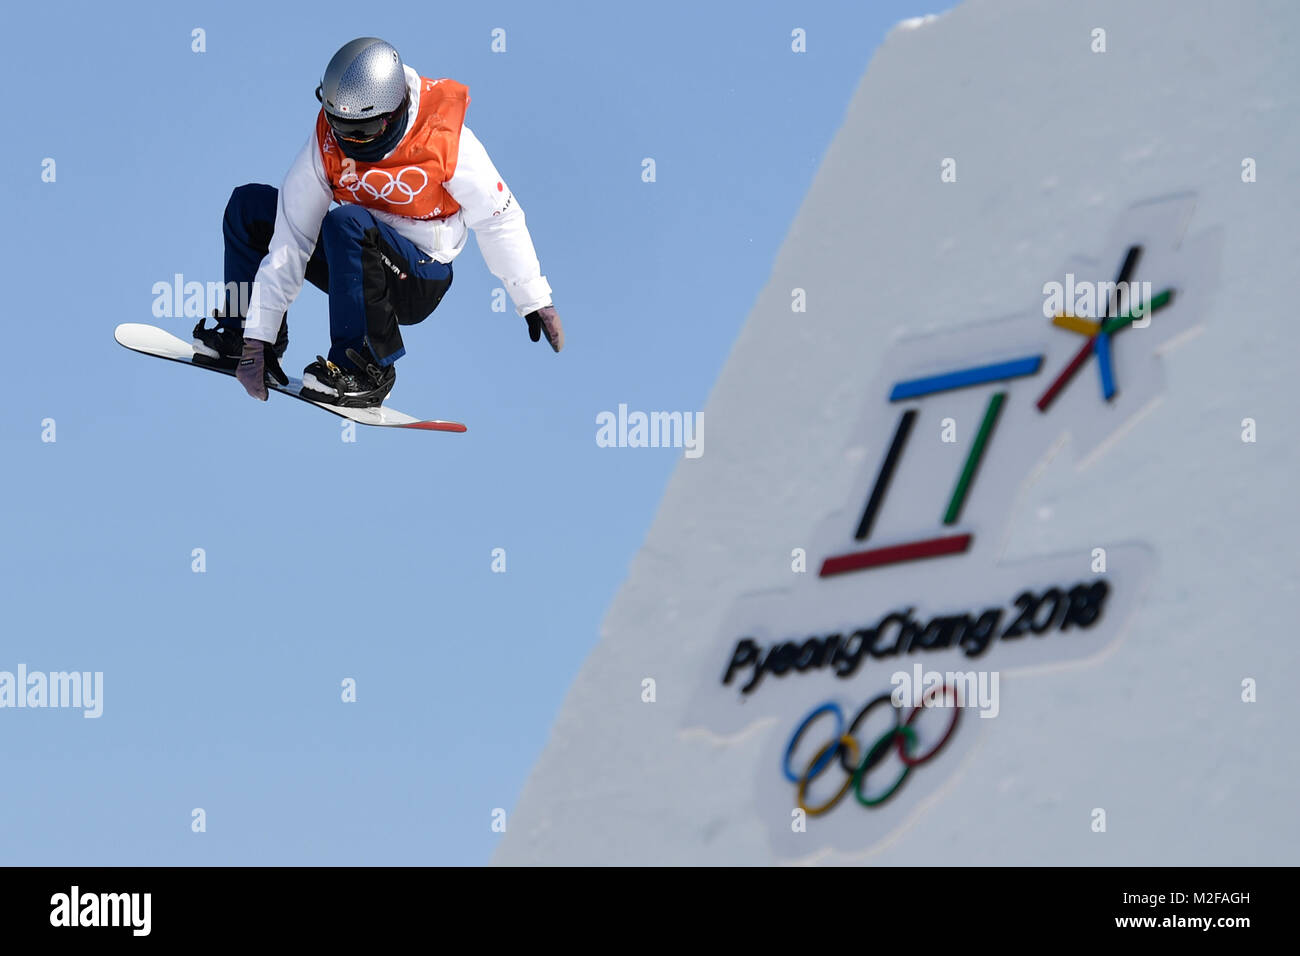 Pyeongchang, Korea. 07th Feb, 2018. Japanese snowboarder in action during the Snowboard Slopestyle training session - Stock Image